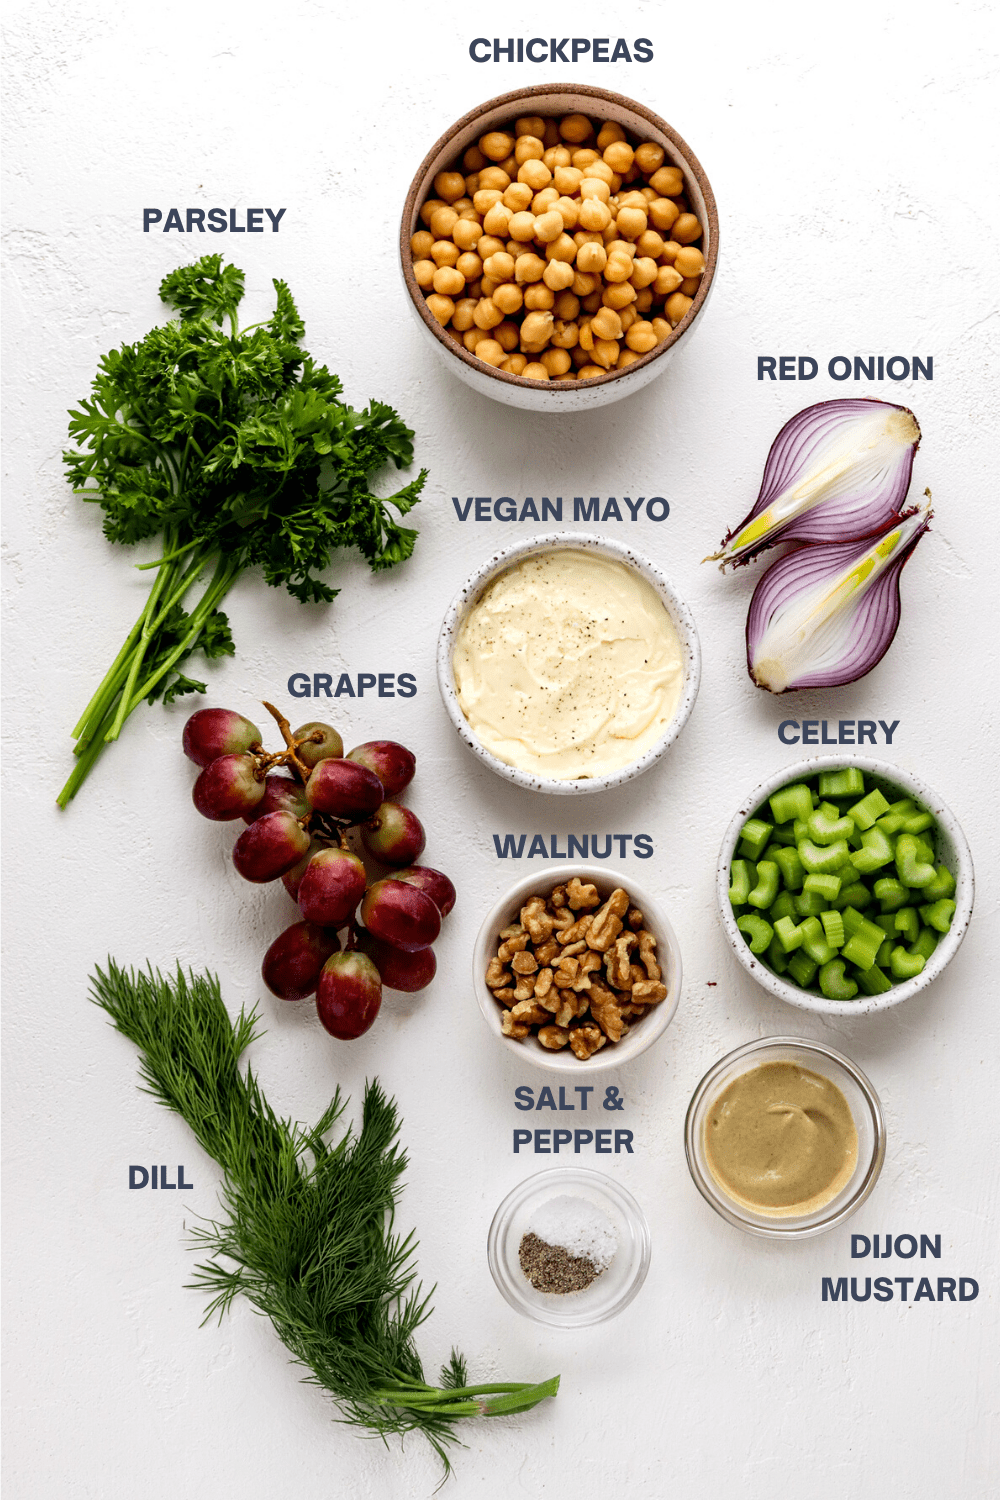 Bowl pf chickpeas, chopped celery, diced grapes, walnuts, mayo, mustard and fresh herbs on a white surface.